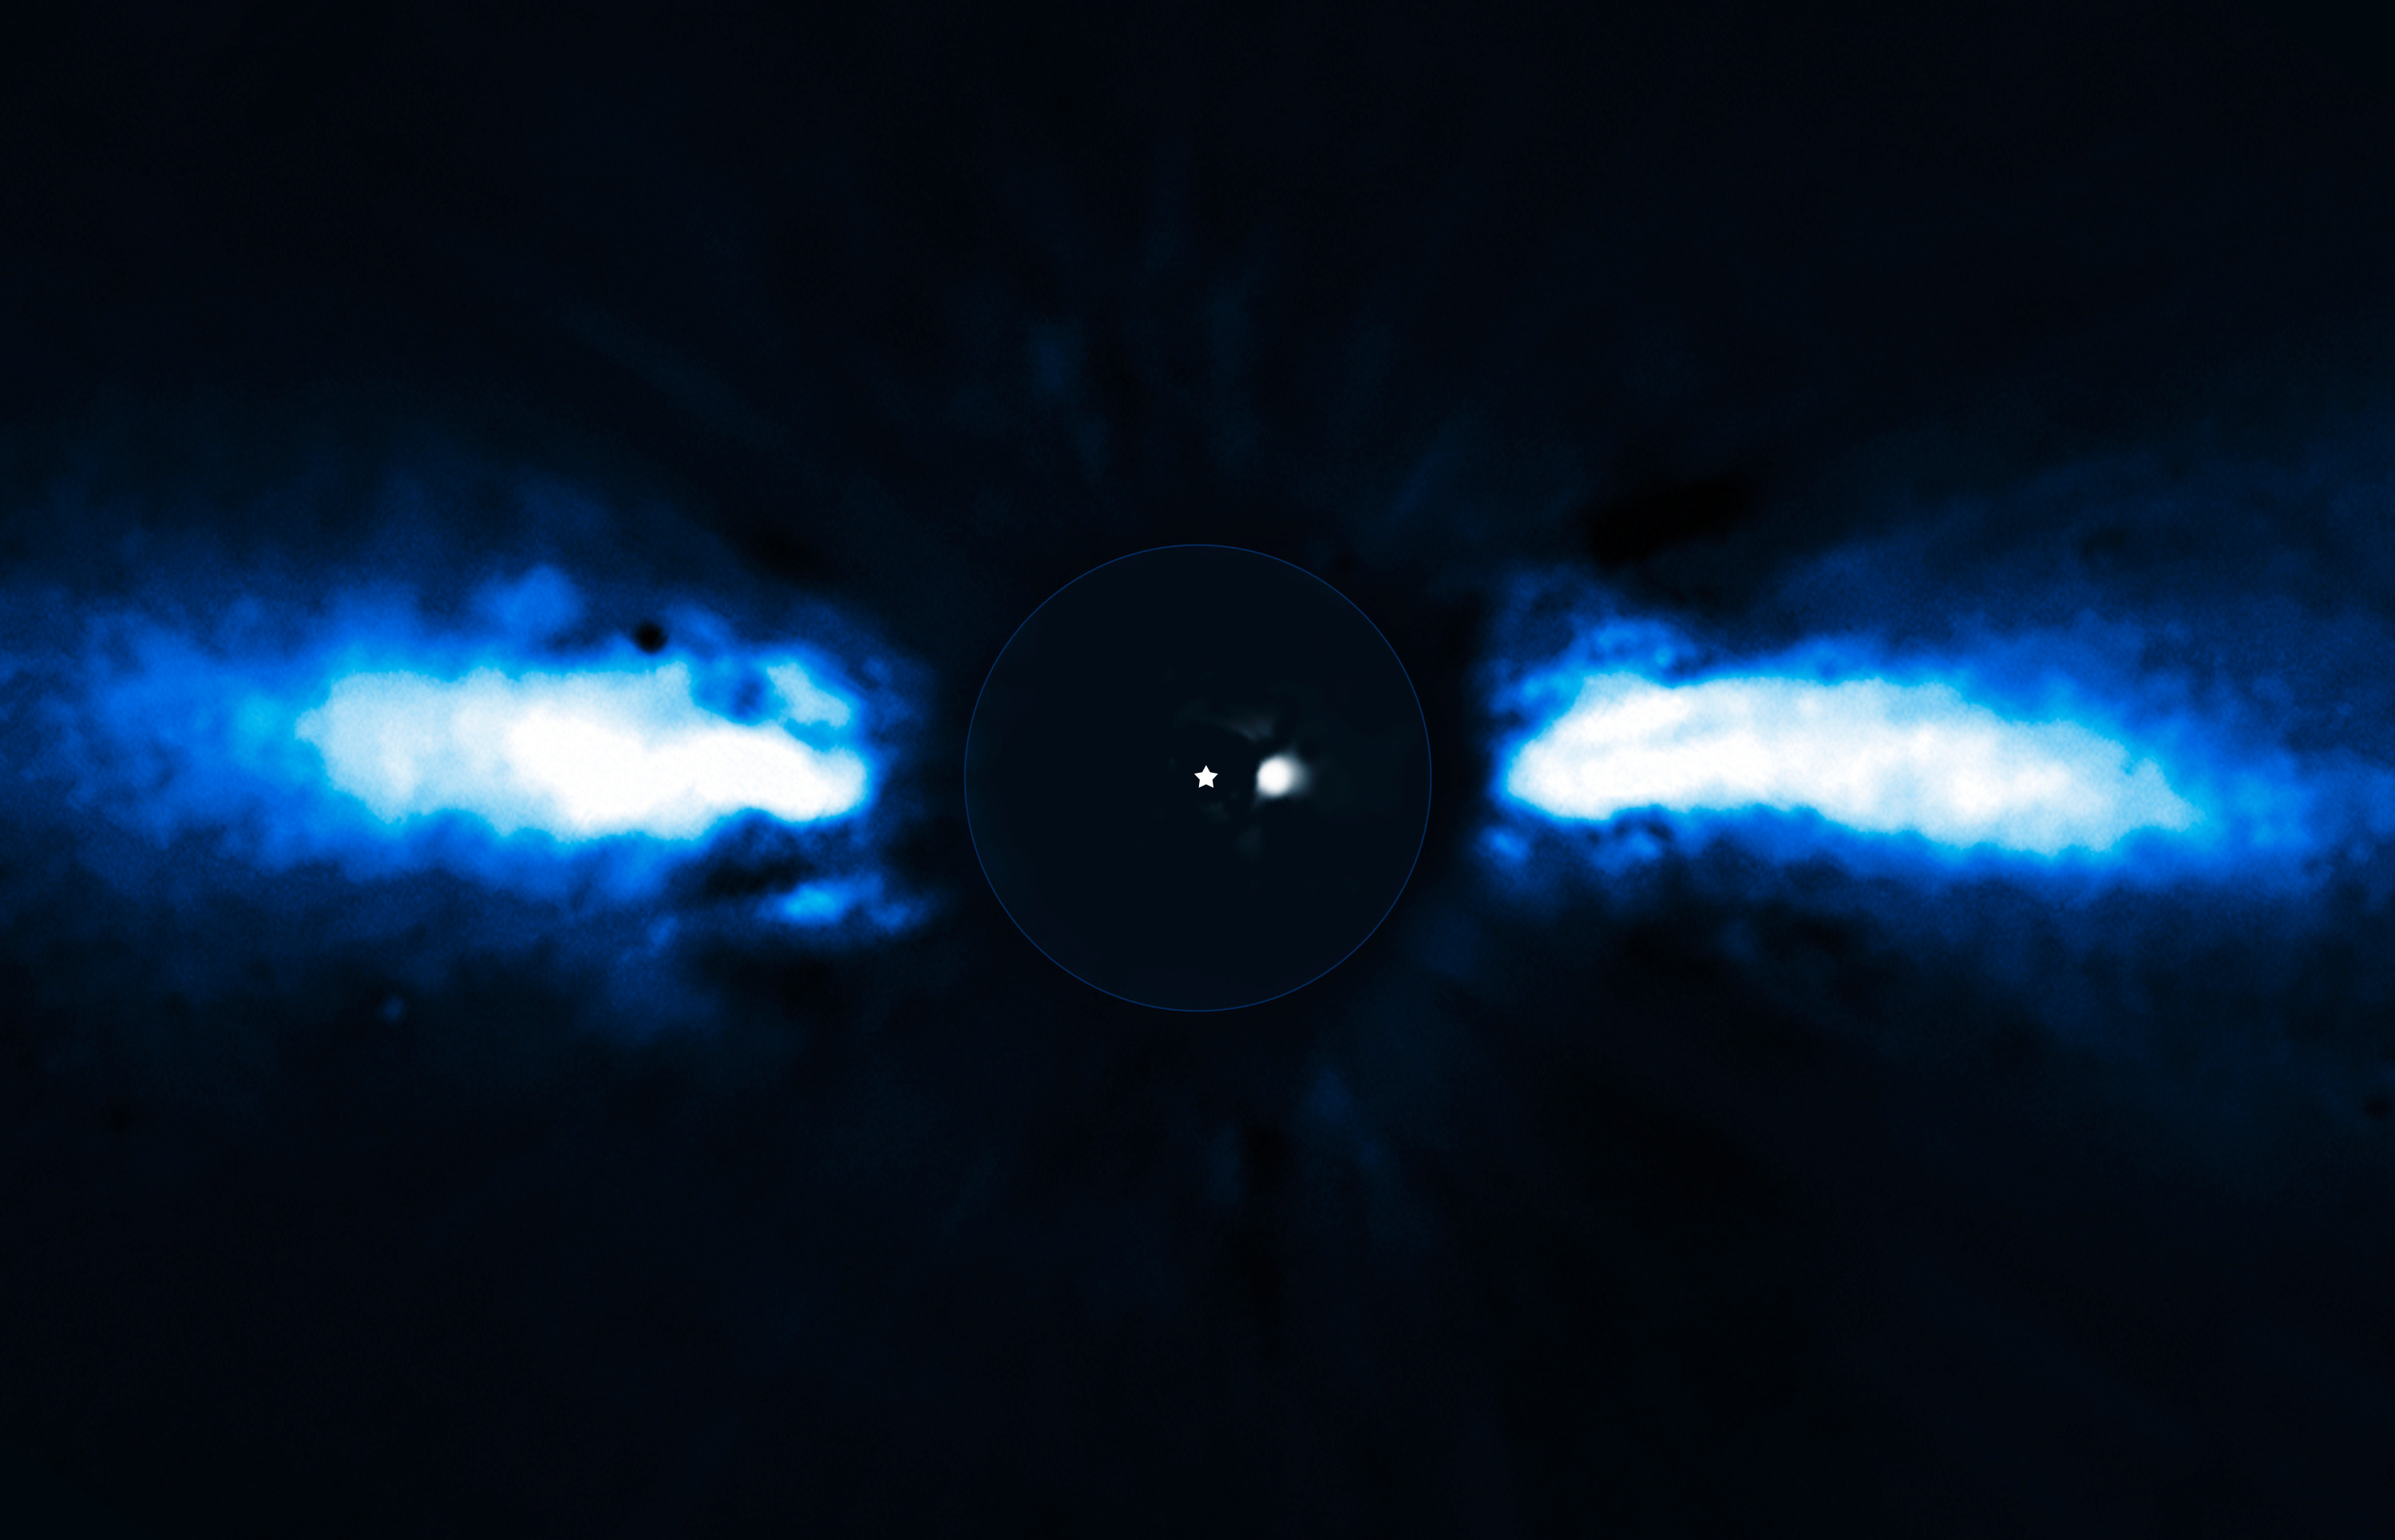 Image of a blacked out circle with a star point in centre and a small light blob next to it. Extending out from the blacked out circle are blue horizontal clouds that represent the debris in the system.